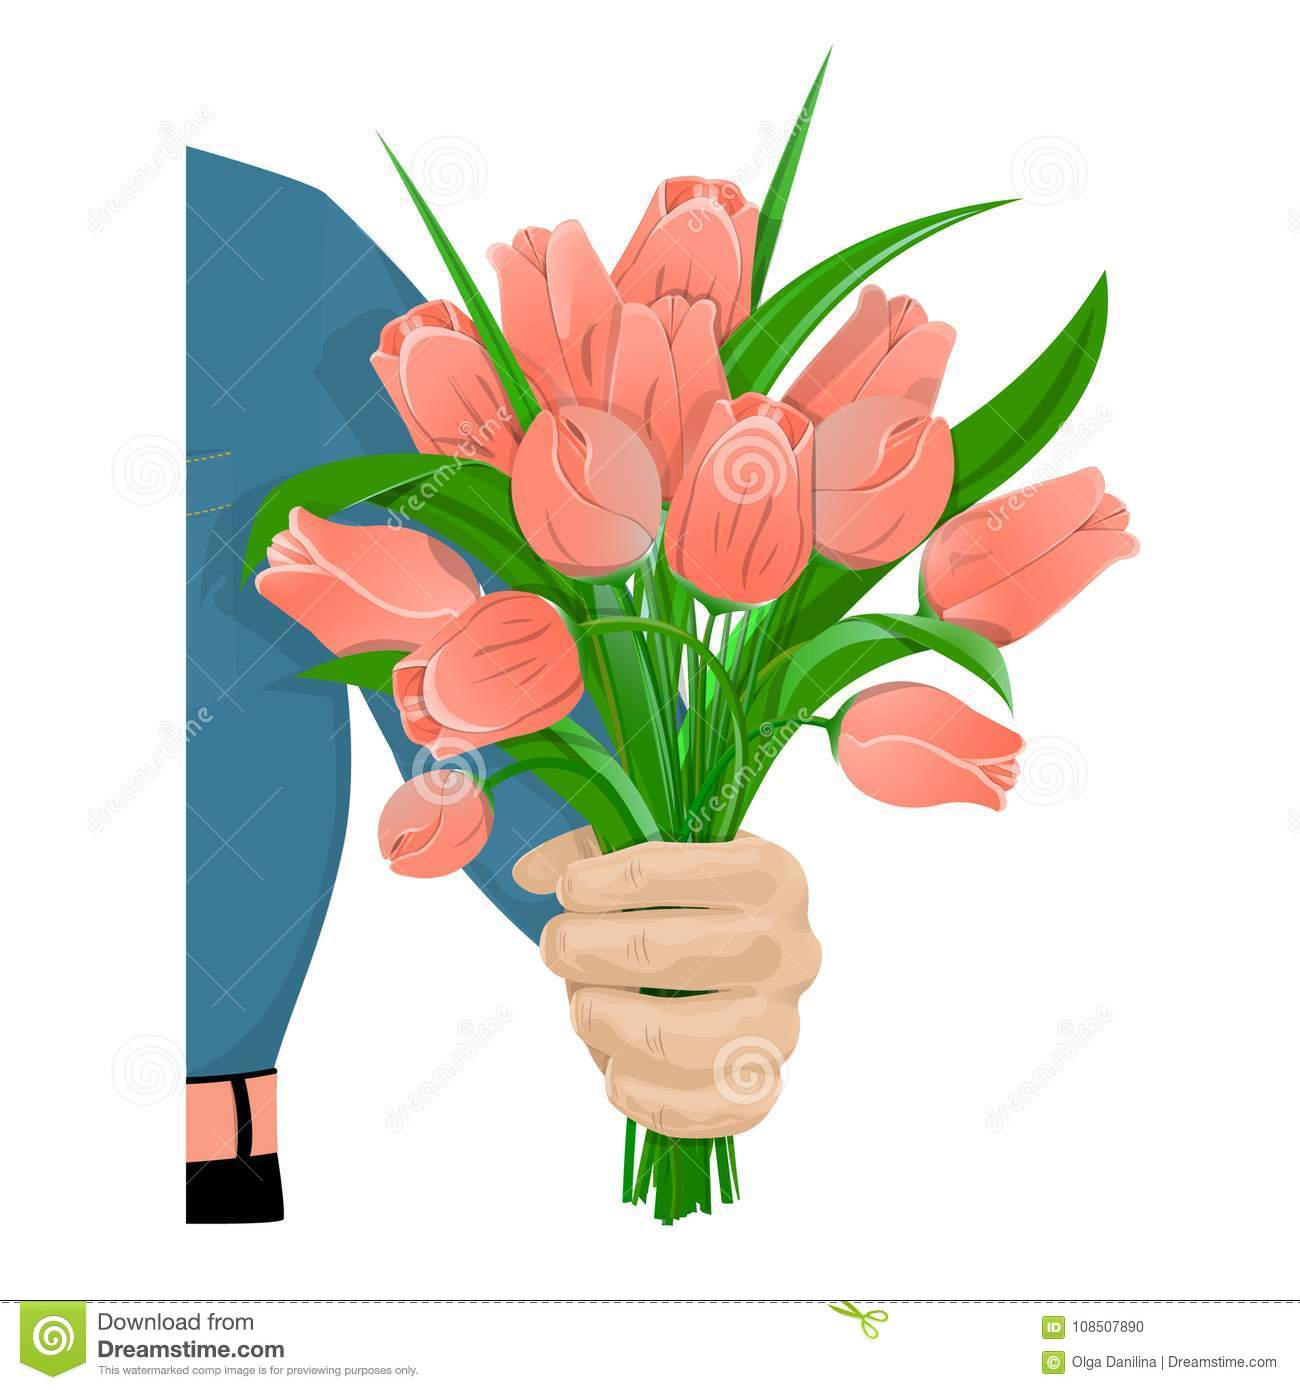 The Man Gives Flowers 01 Stock Vector Illustration Of Hold 108507890